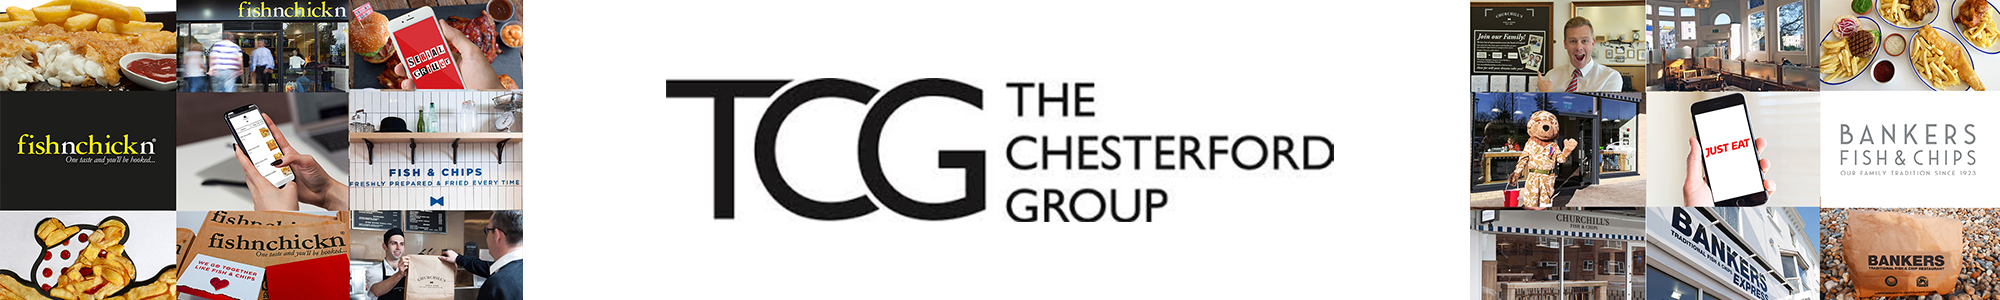 The Chesterford Group